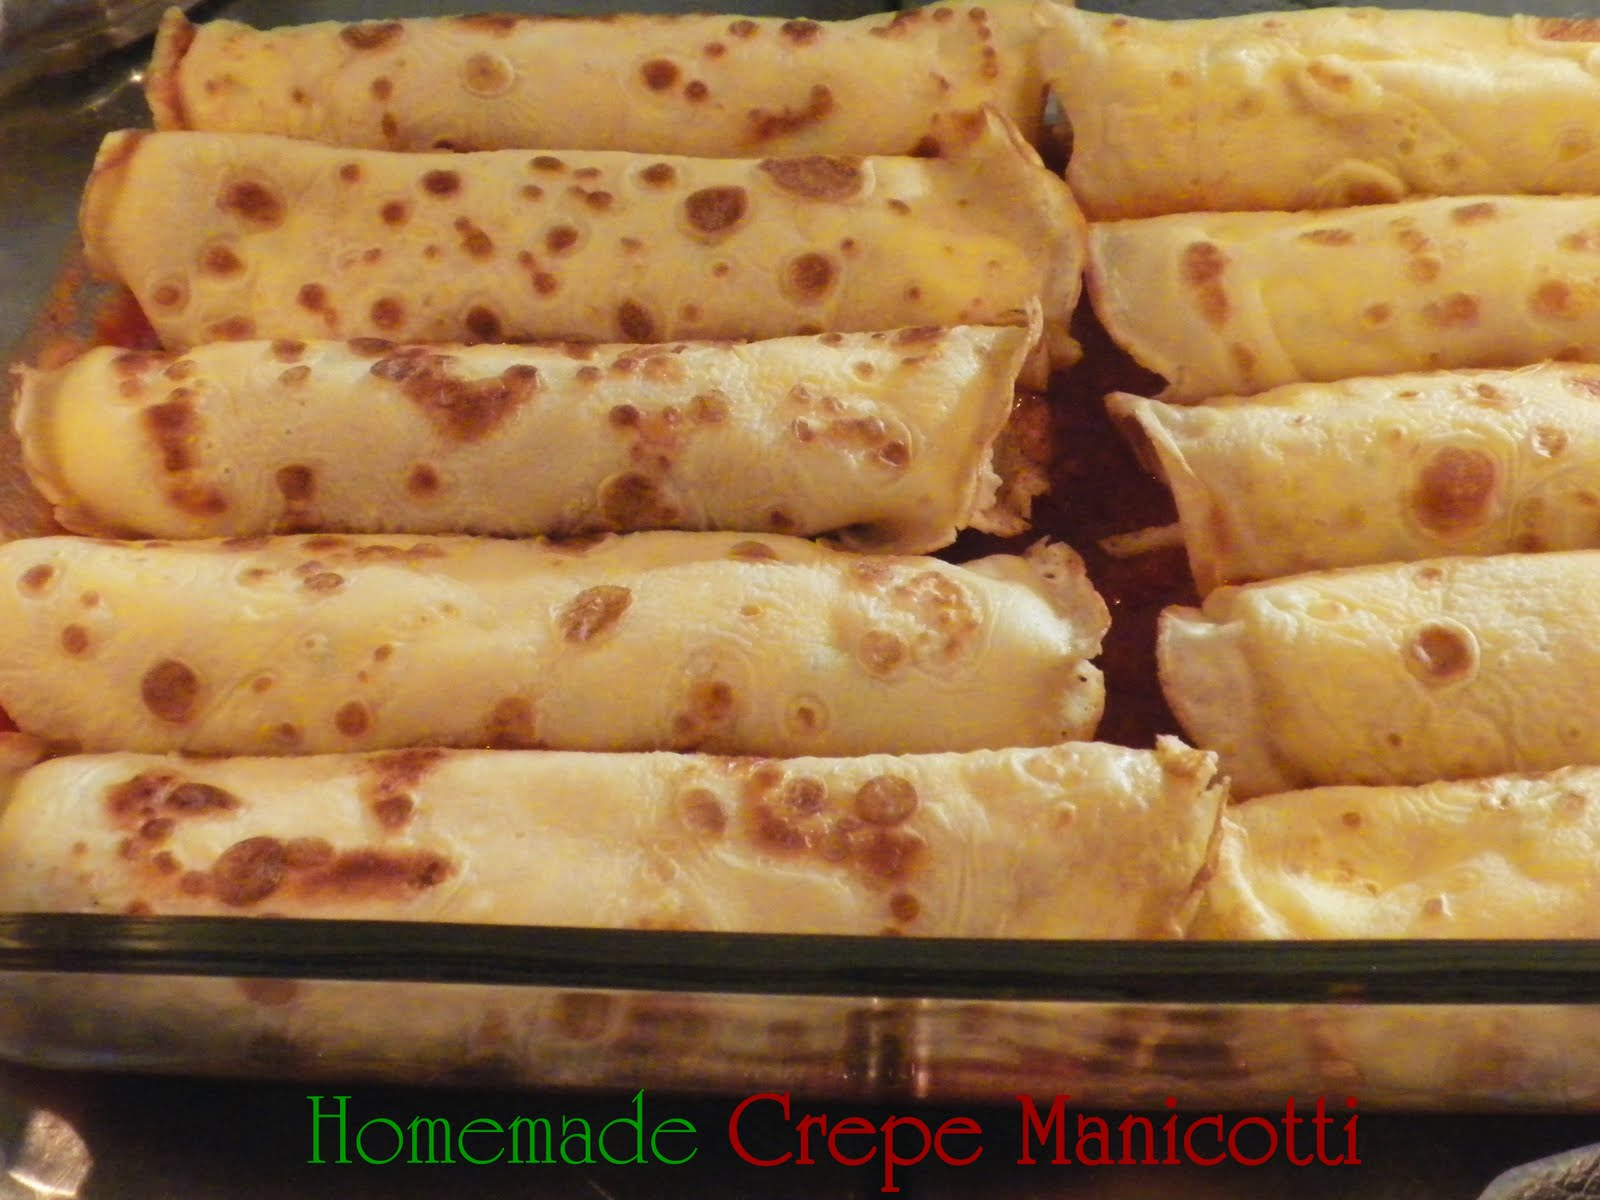 ... mouth crepe style italian manicotti made with homemade crepes rather